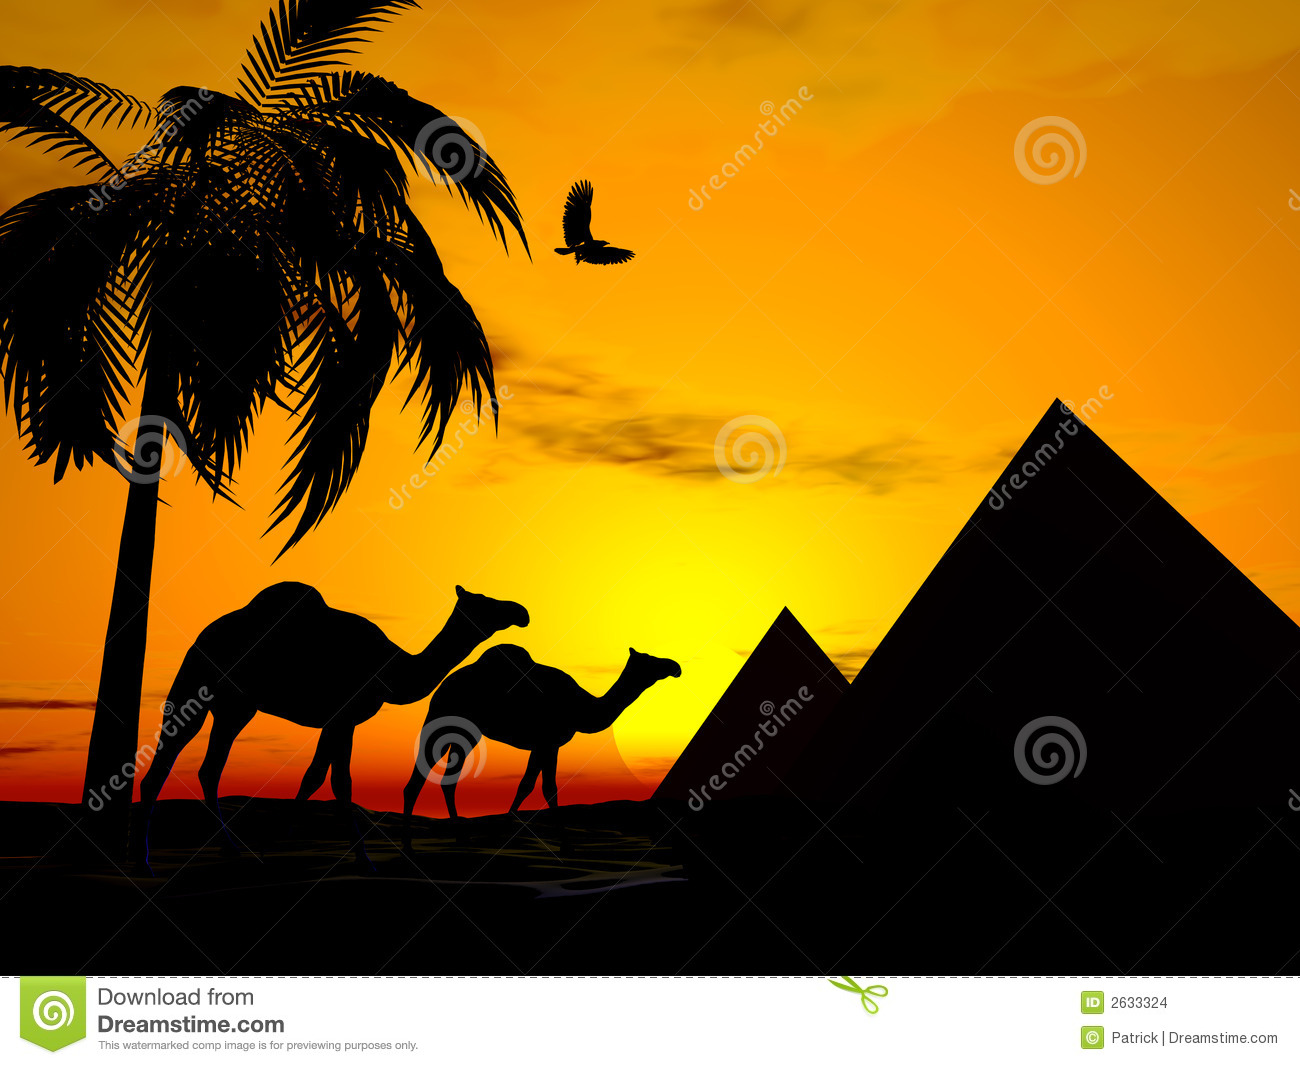 Illustration of Camels walking in desert sunset, pyramids in ...